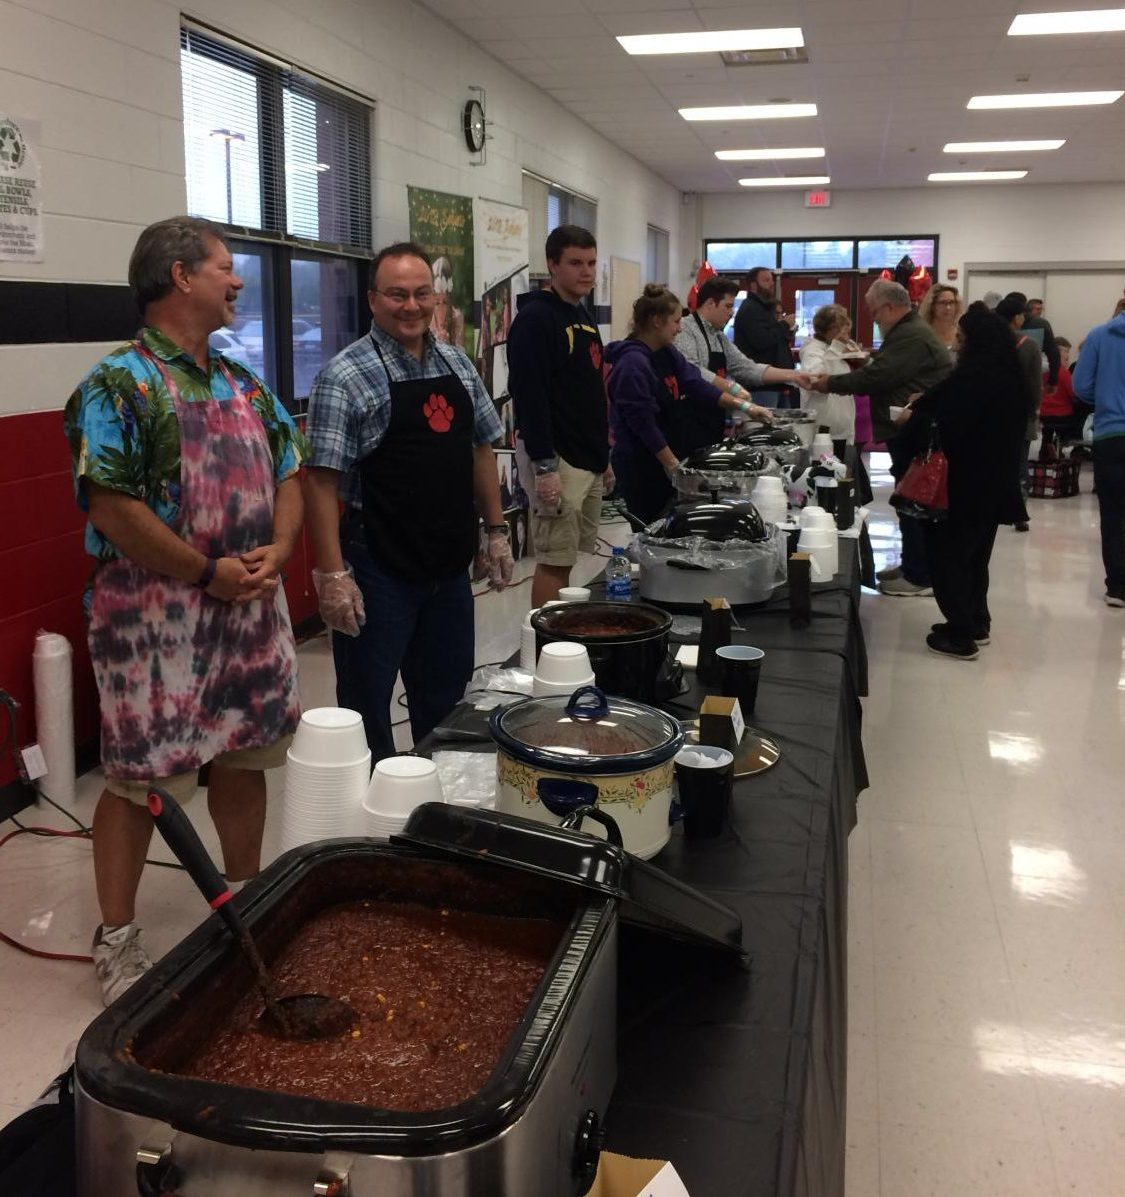 Step right up! Parents and students alike line up their tables for the annual Red Paw Chili Supper. Which Chili was YOUR favorite?